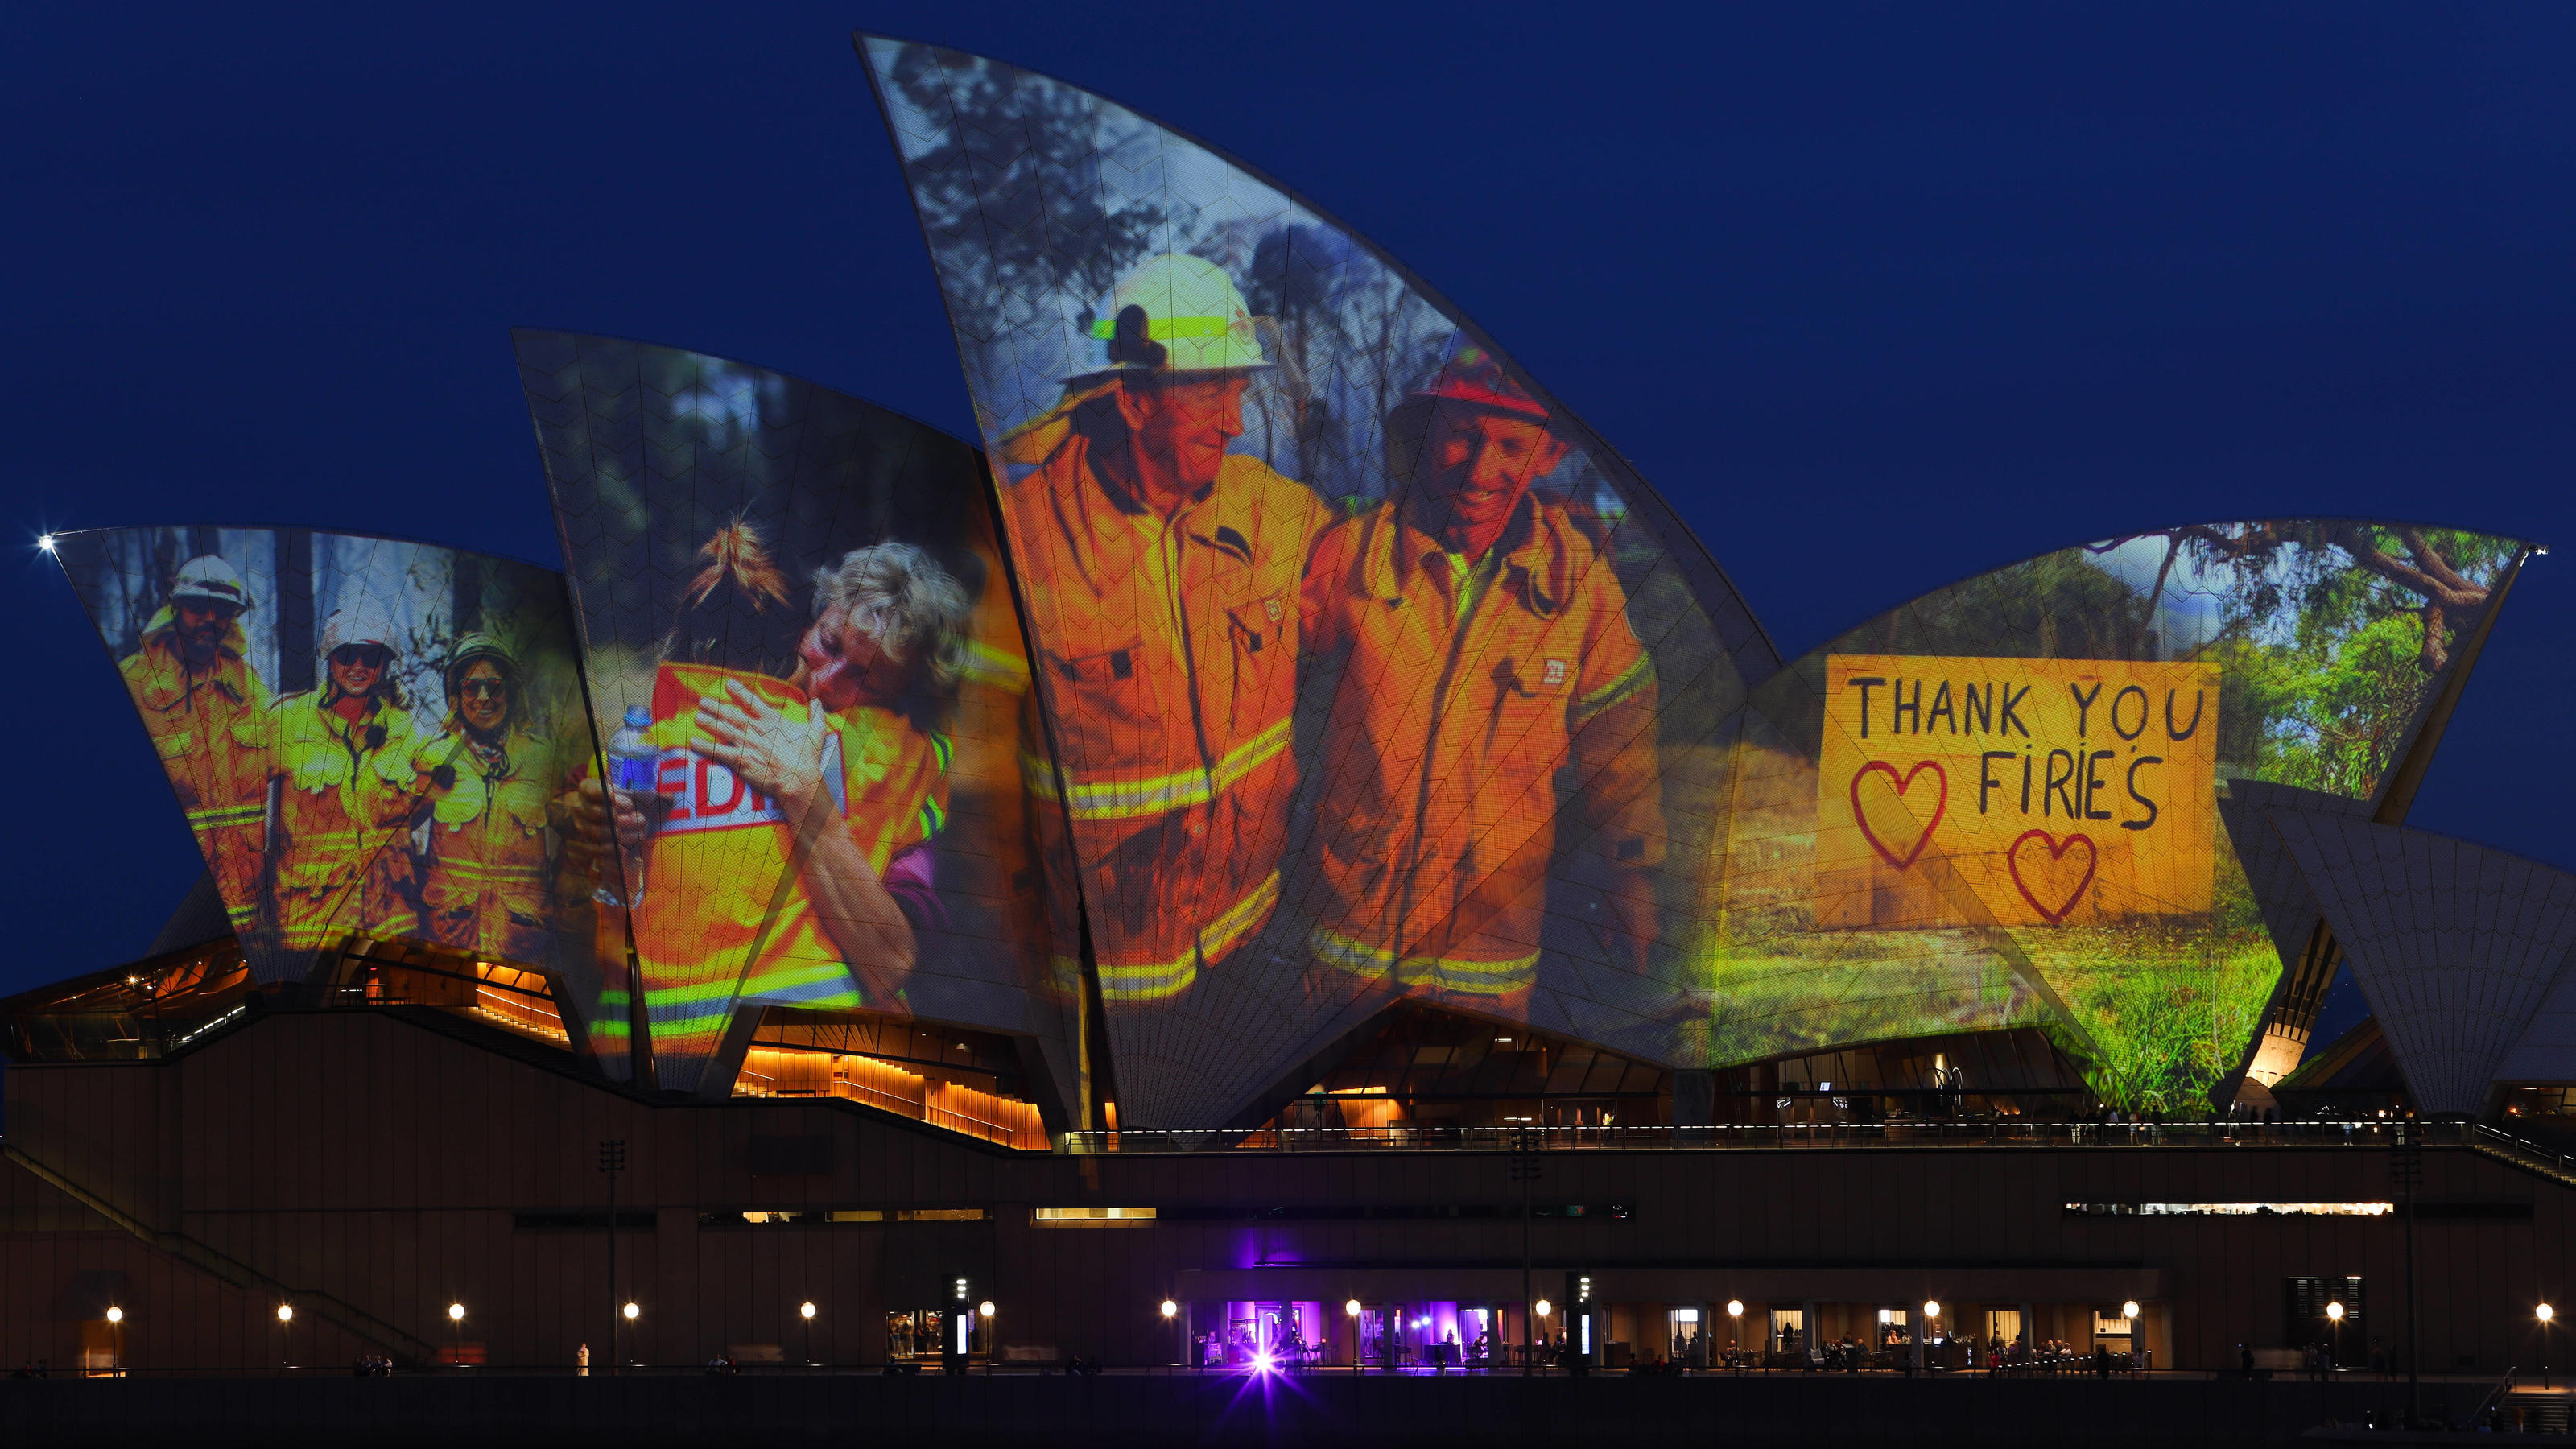 News Bilder des Tages BUSHFIRE SUPPORT SYDNEY OPERA HOUSE, Projections are seen on the sails of the Sydney Opera House in recognition of the communities affected by fires across rural and regional Australia, in Sydney, Saturday, January 11, 2020. Sin